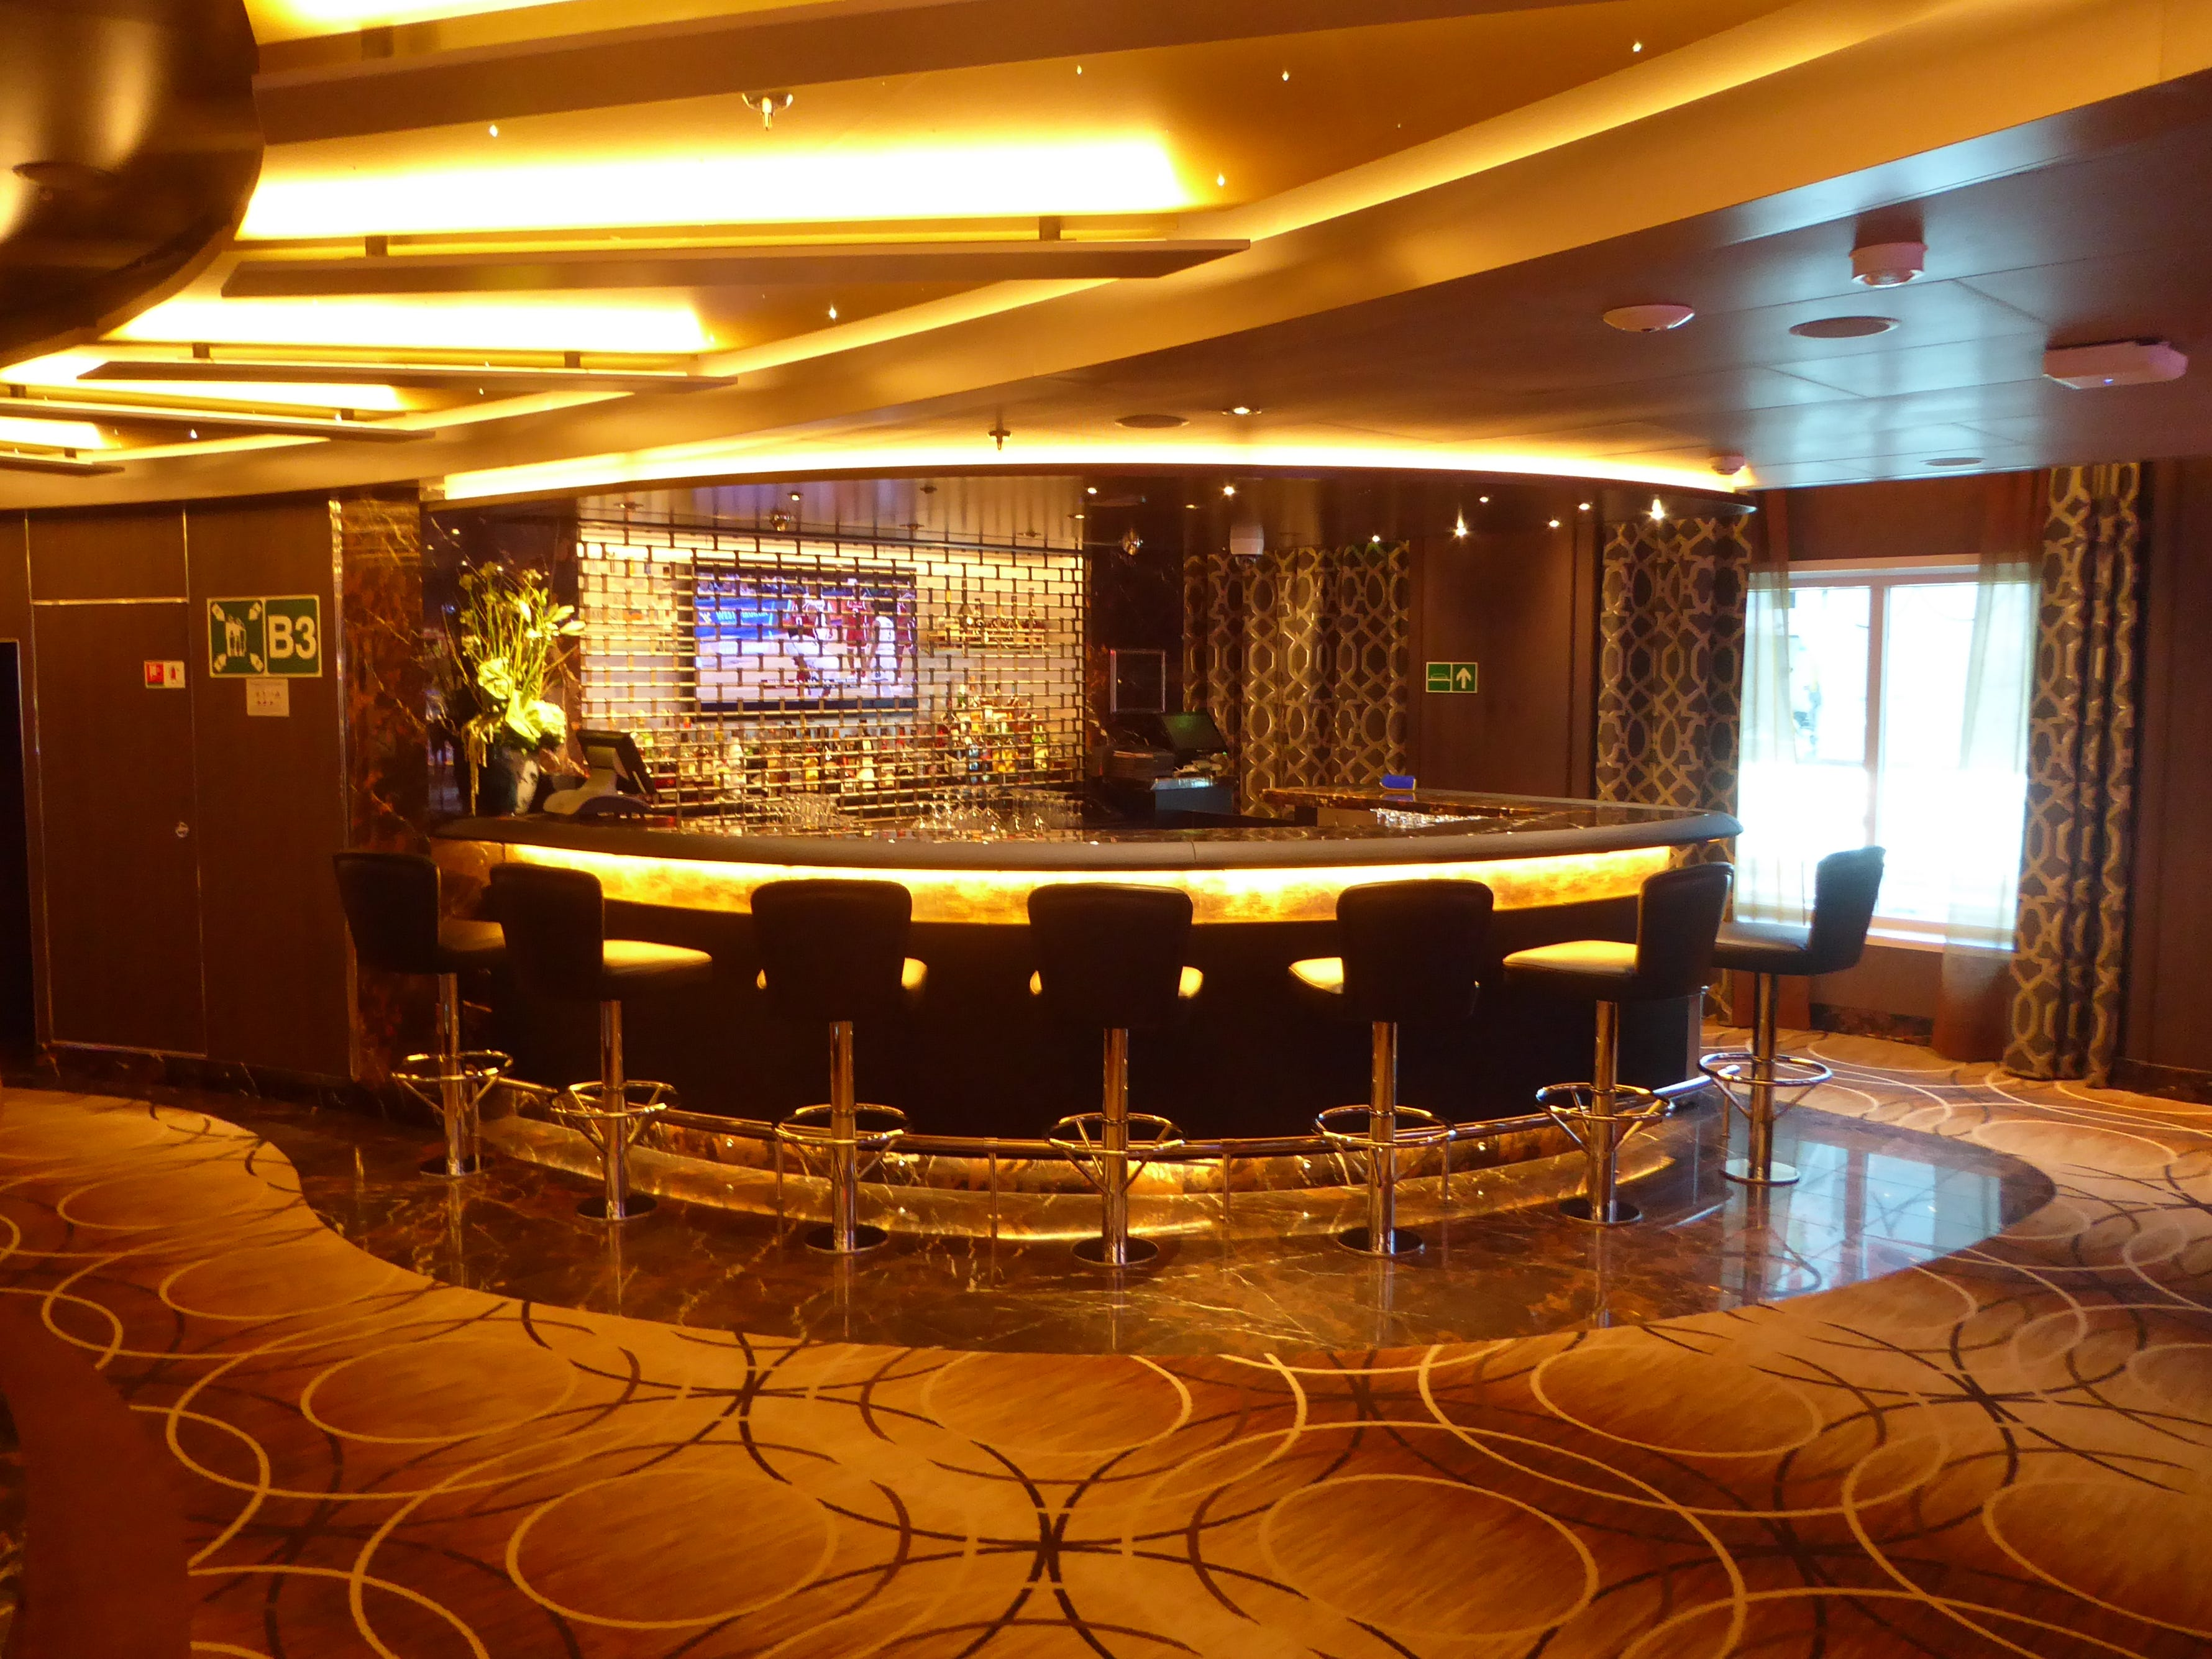 The Casino has its own dedicated bar area.